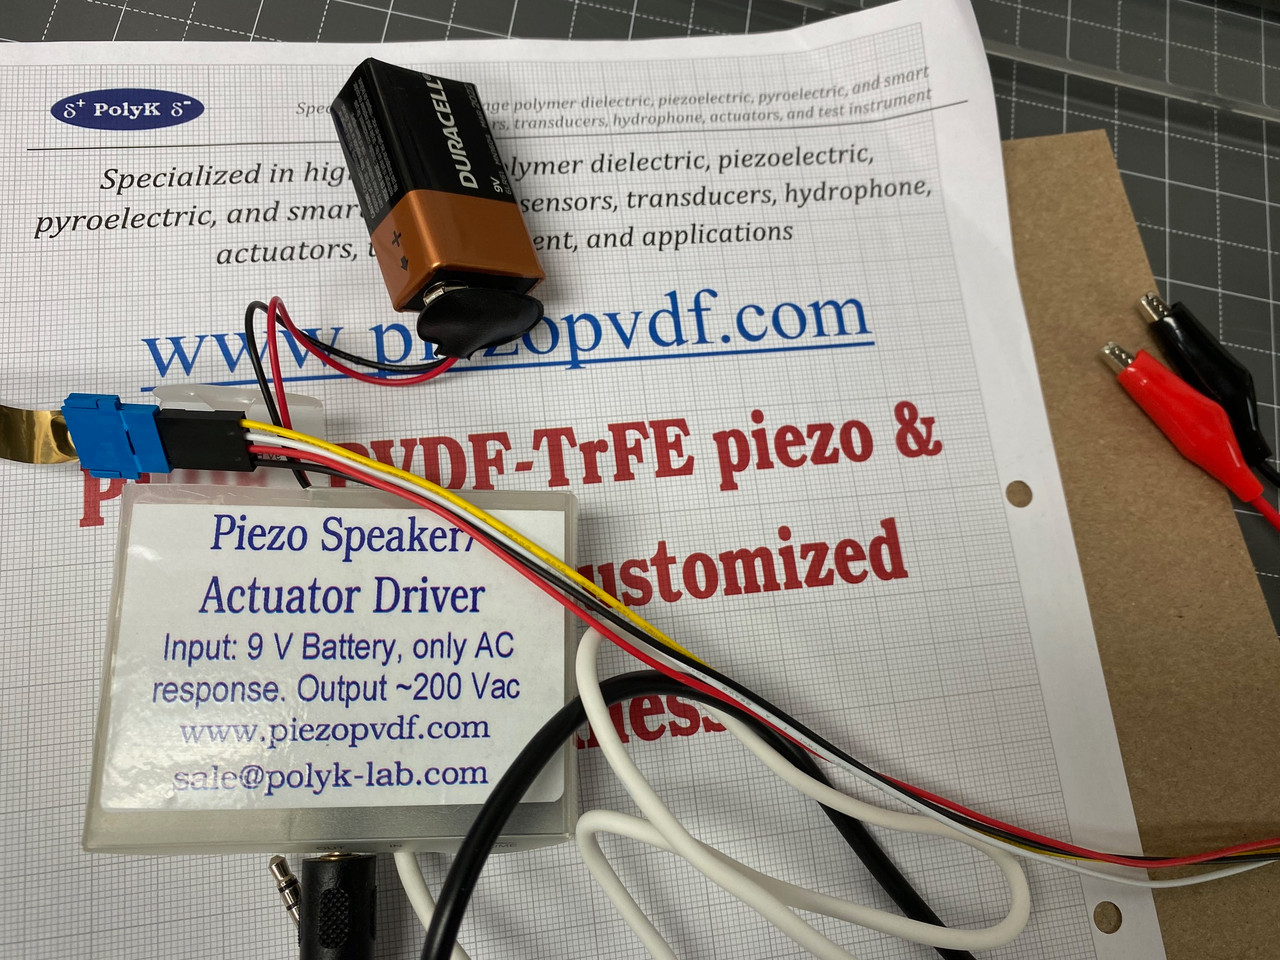 Low Voltage Electroactive Polymer EAP Actuator & Speaker with 9 V Driver and Cables